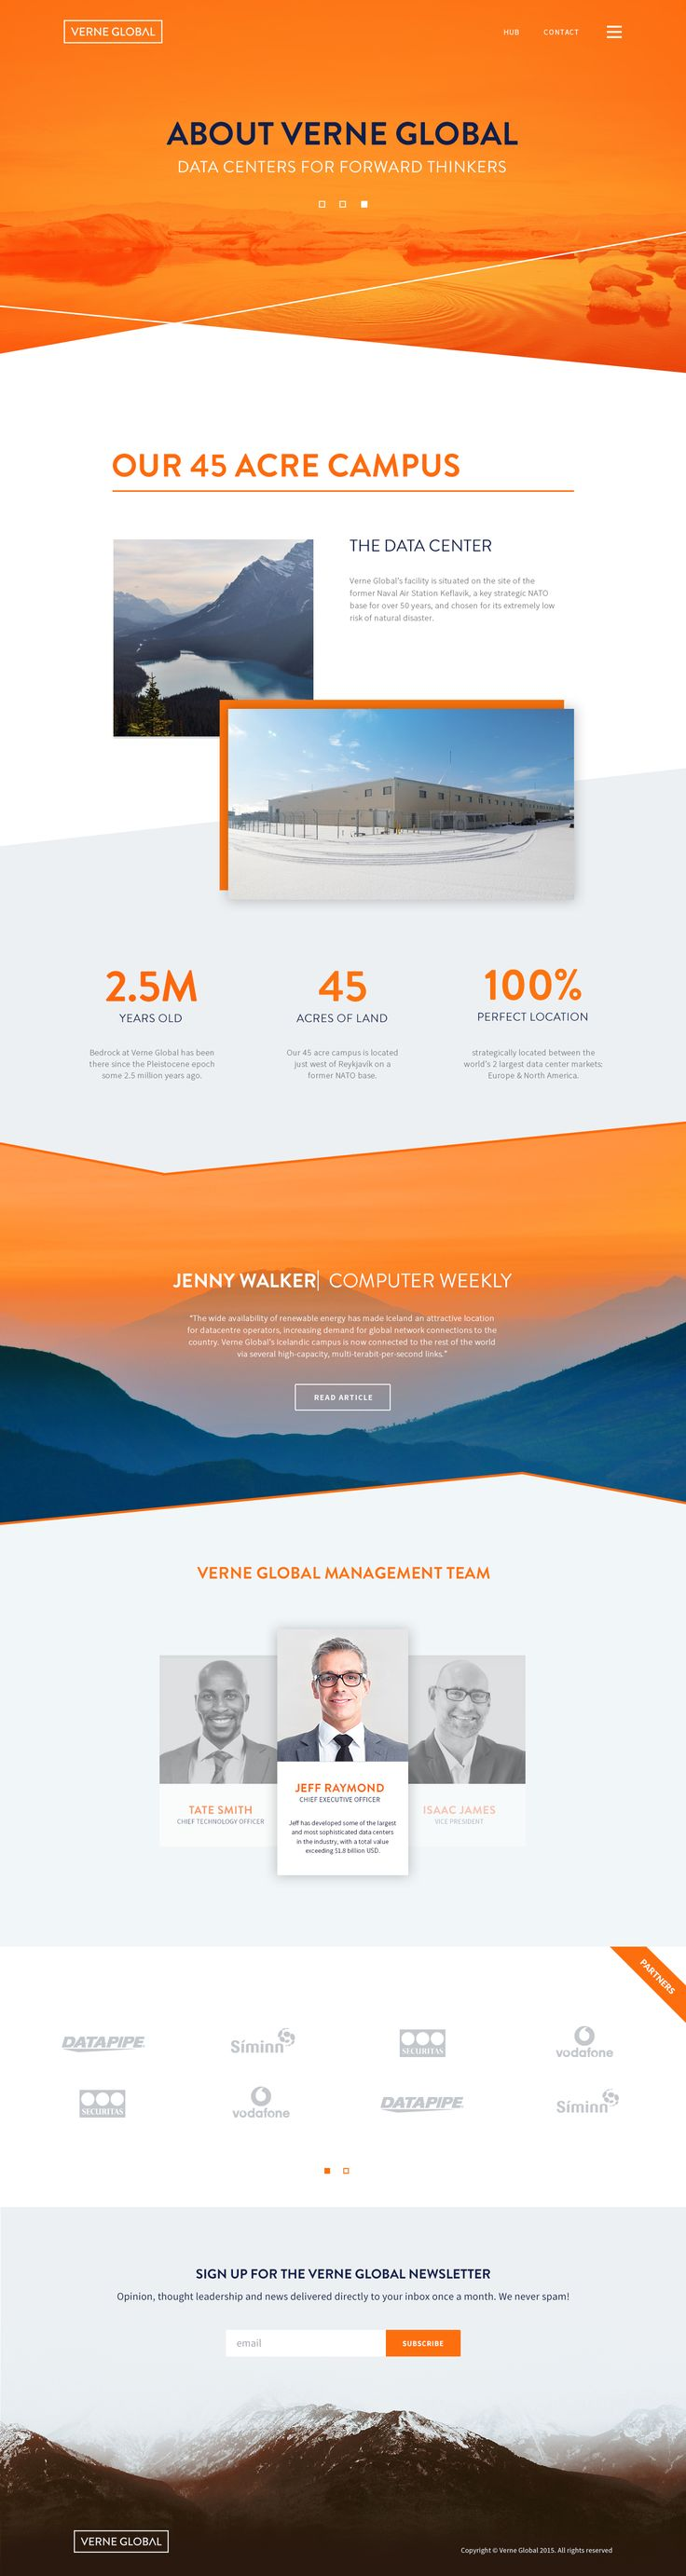 Verne global web design about                                                                                                                                                                                 More